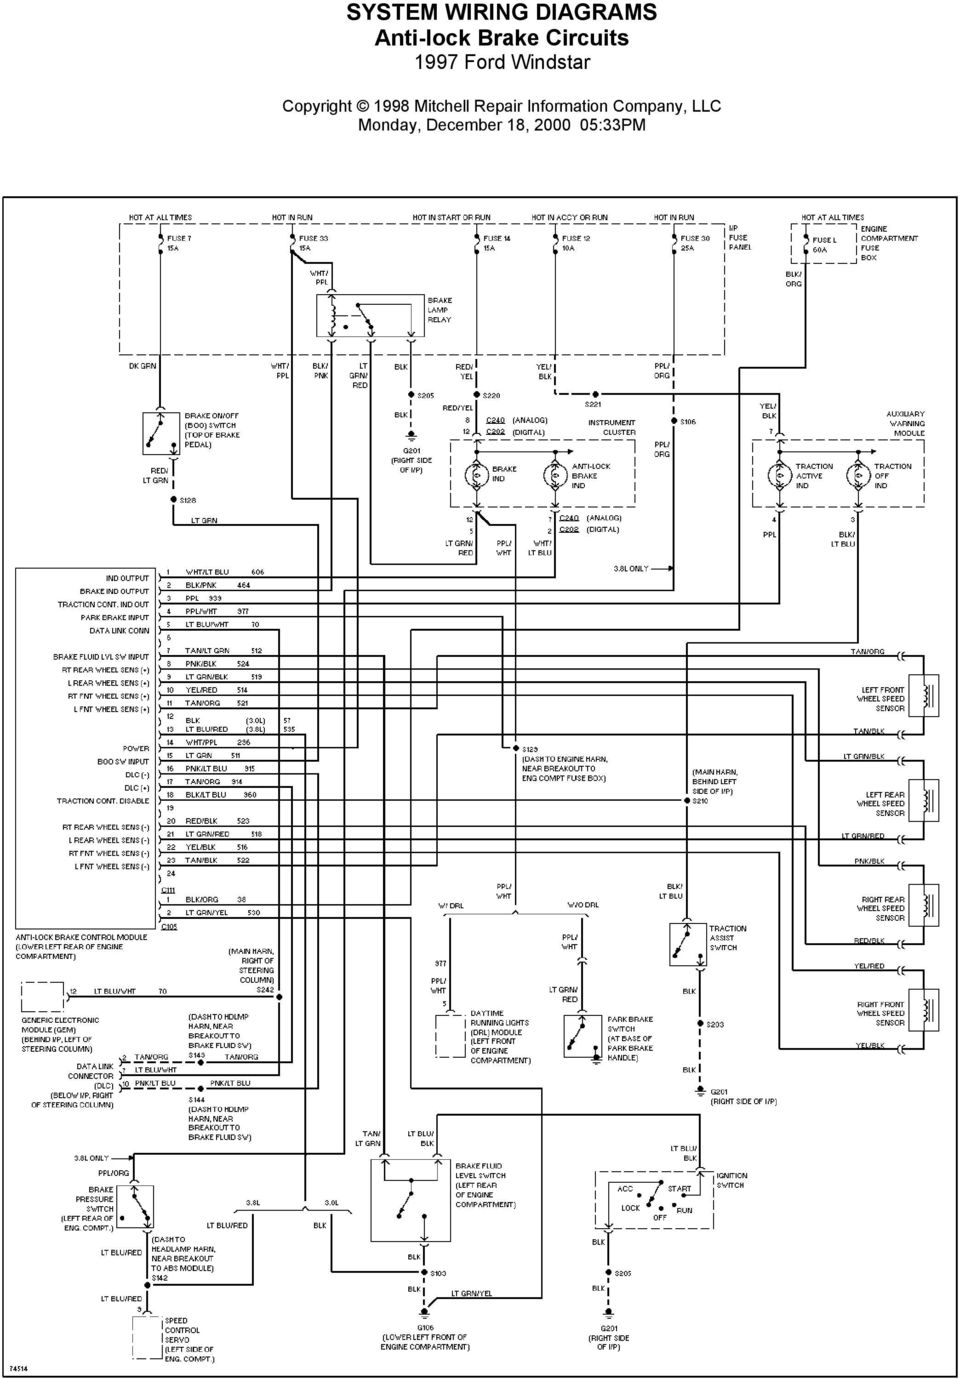 System Wiring Diagrams Air Conditioning Circuits 1997 Ford Windstar 2 3 Liter Engine Diagram Schematic Anti Theft Circuit Monday December 18 34pm